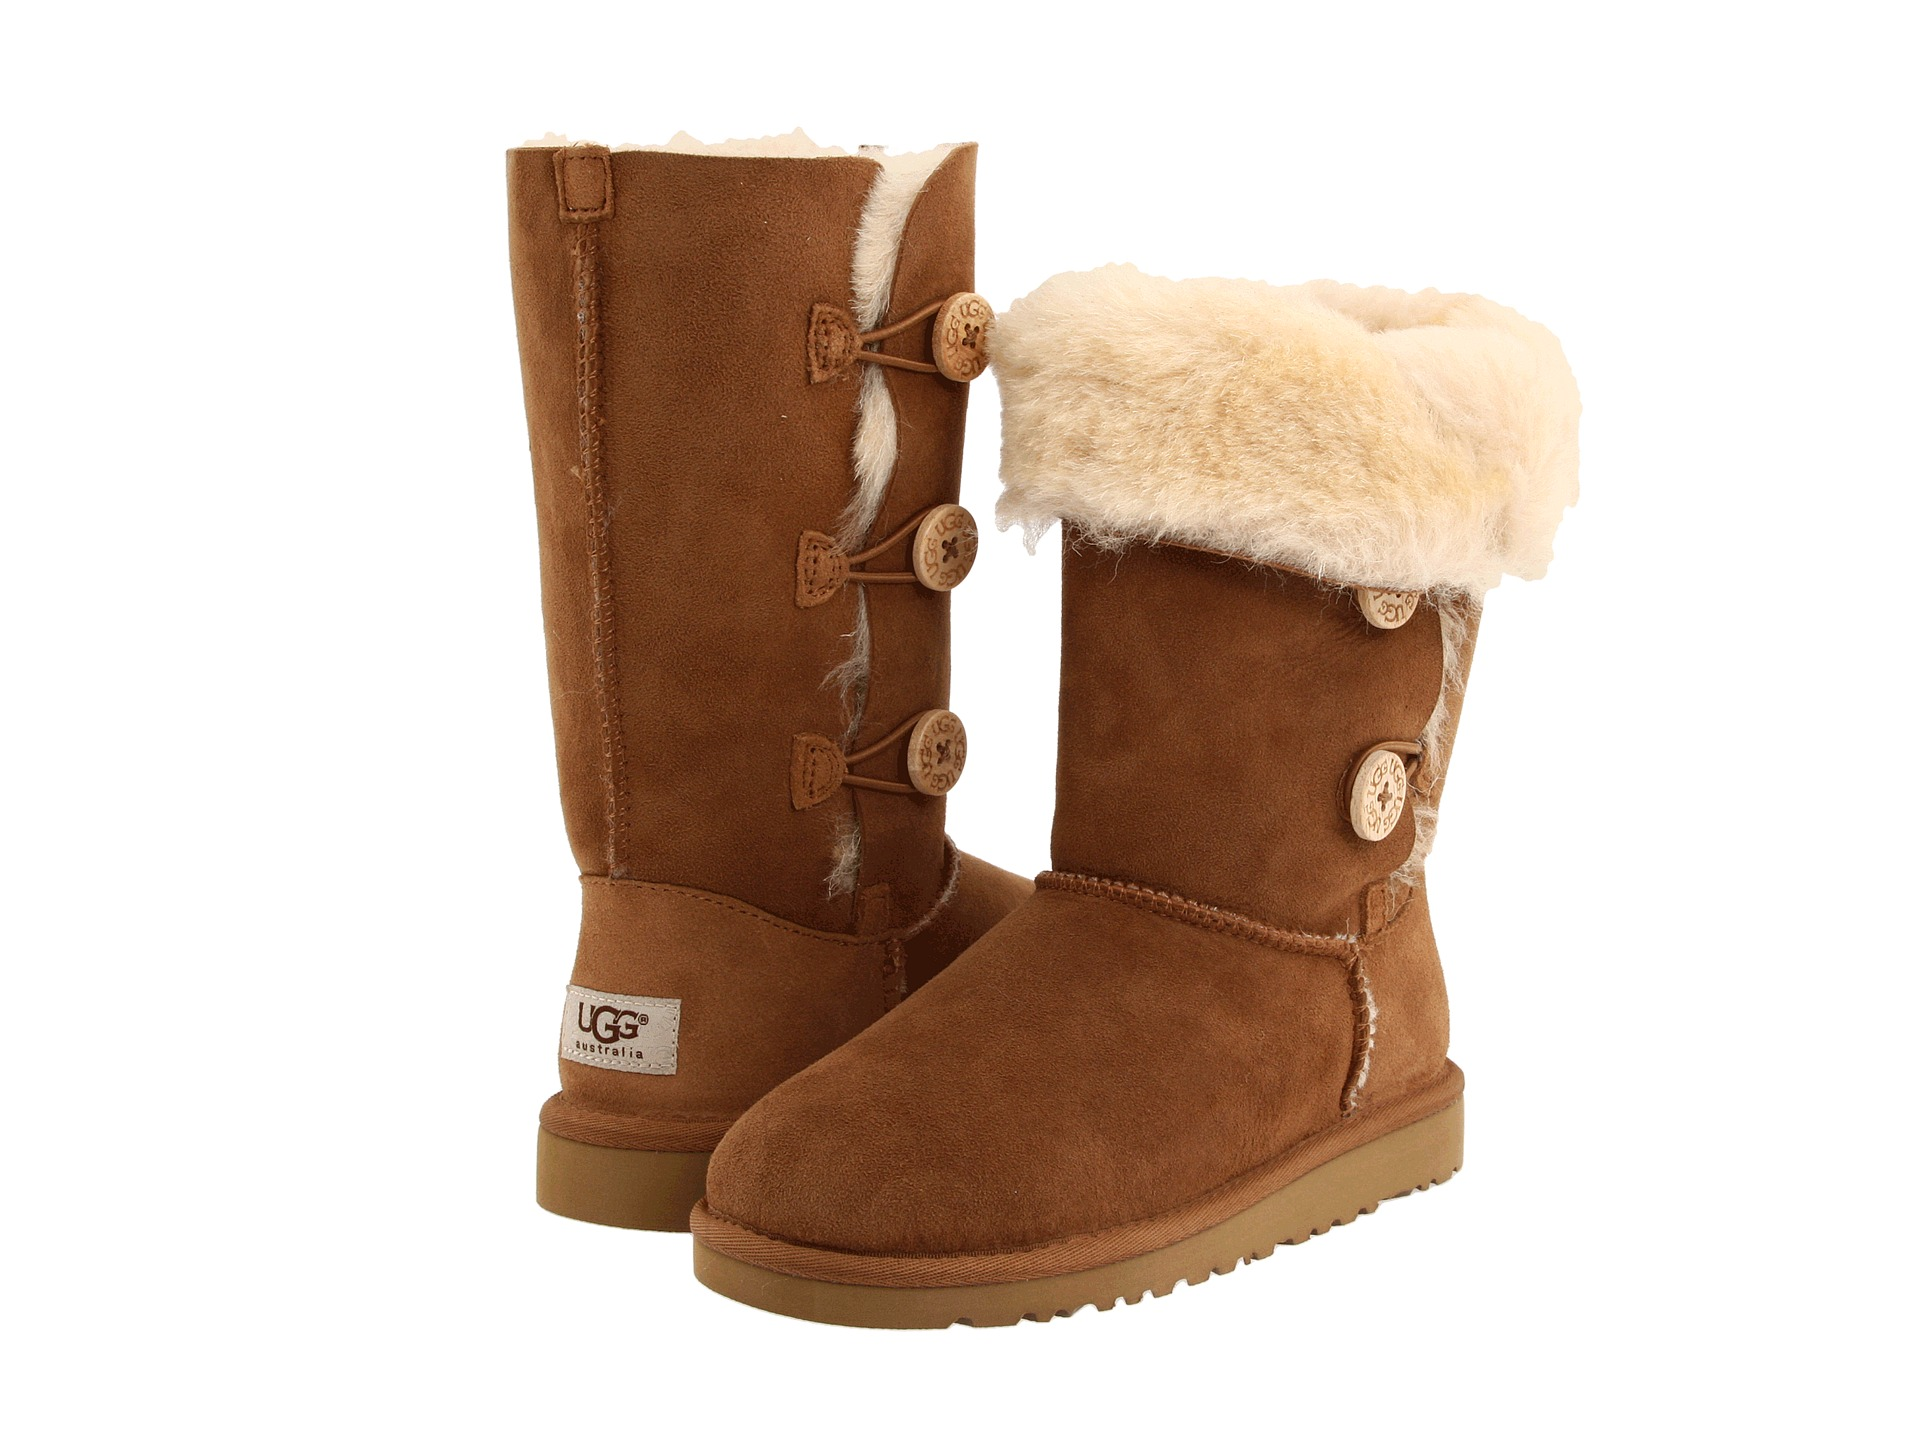 Find cheap ugg boots from a vast selection of